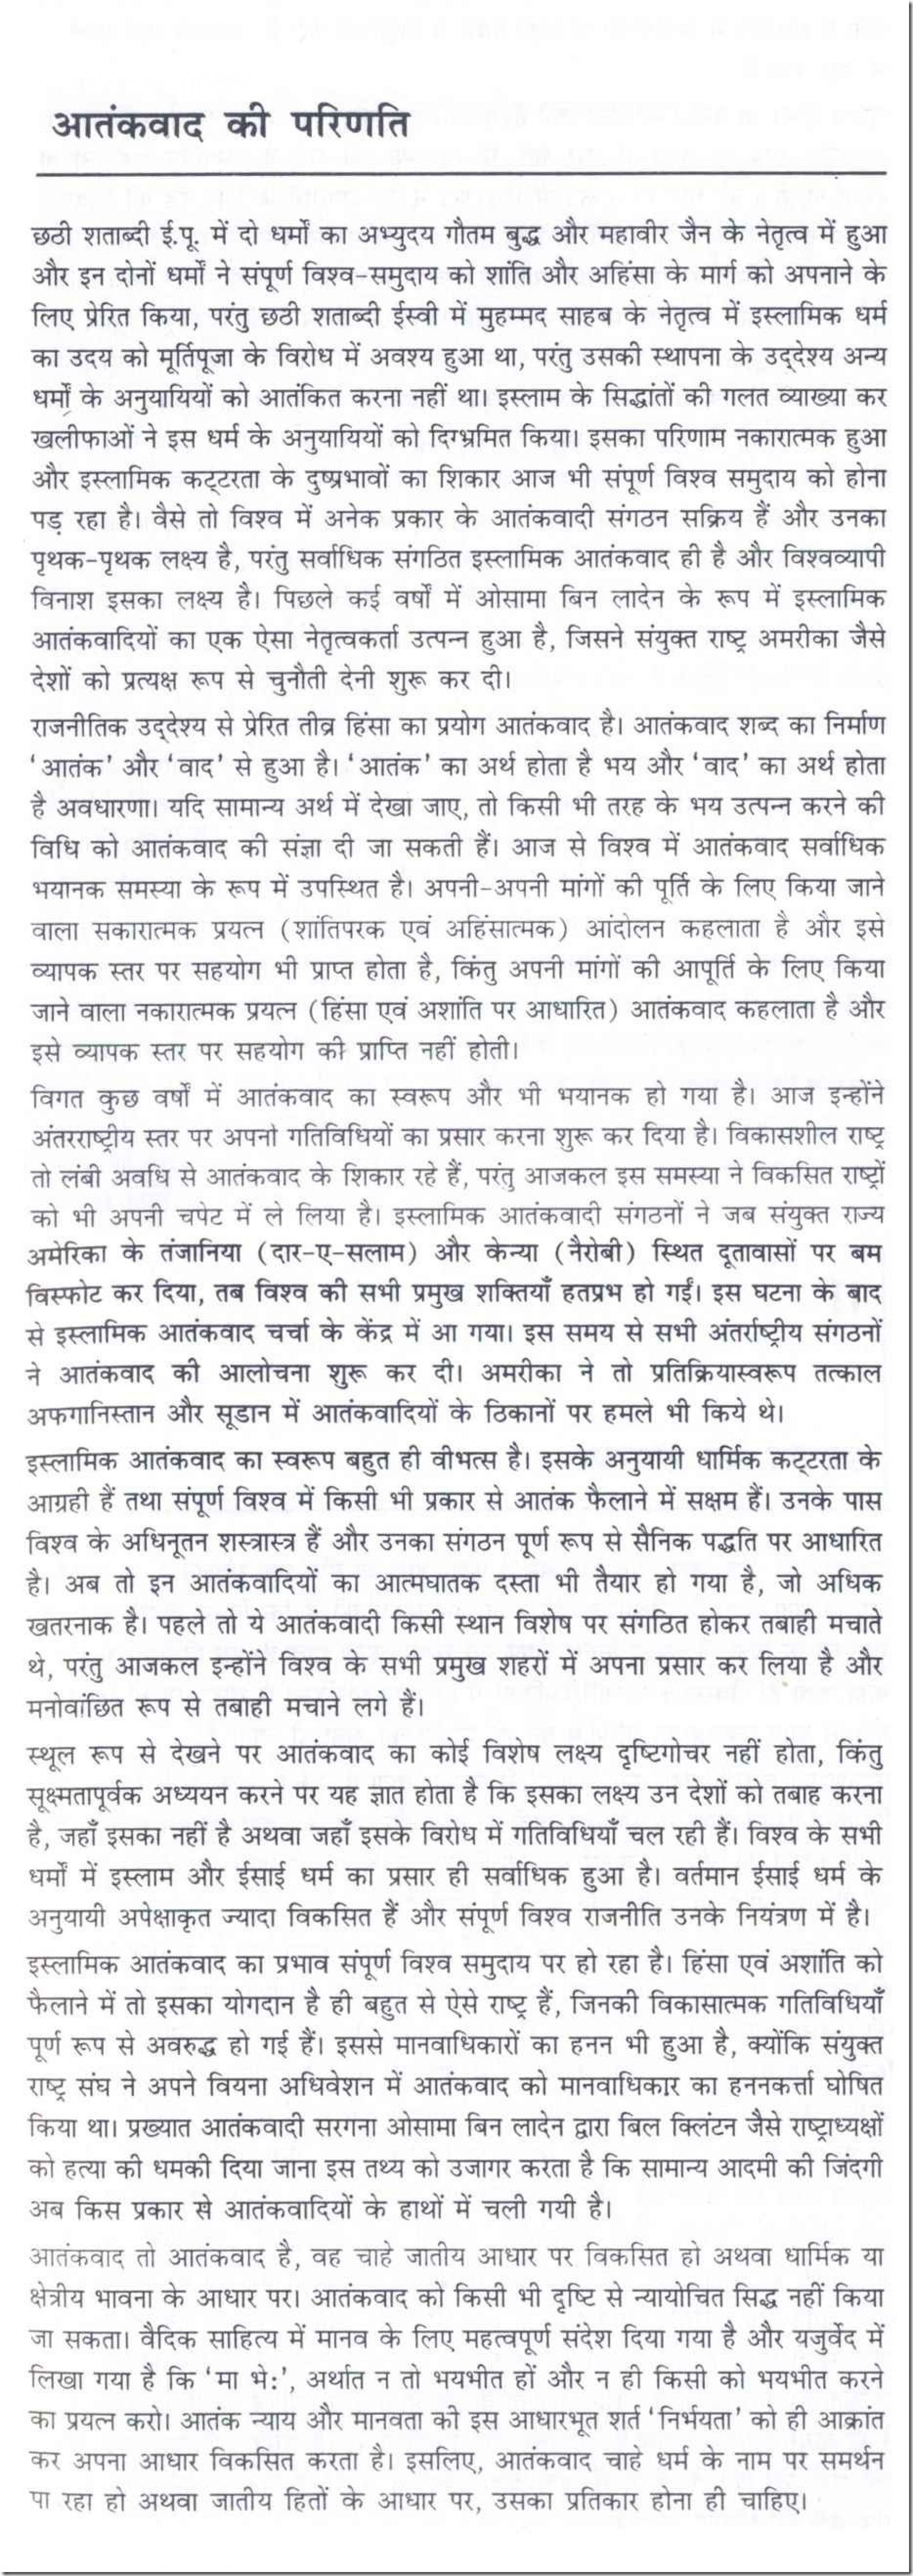 006 Essay Example 10010 Thumb Global Terrorism In Outstanding Hindi 1920